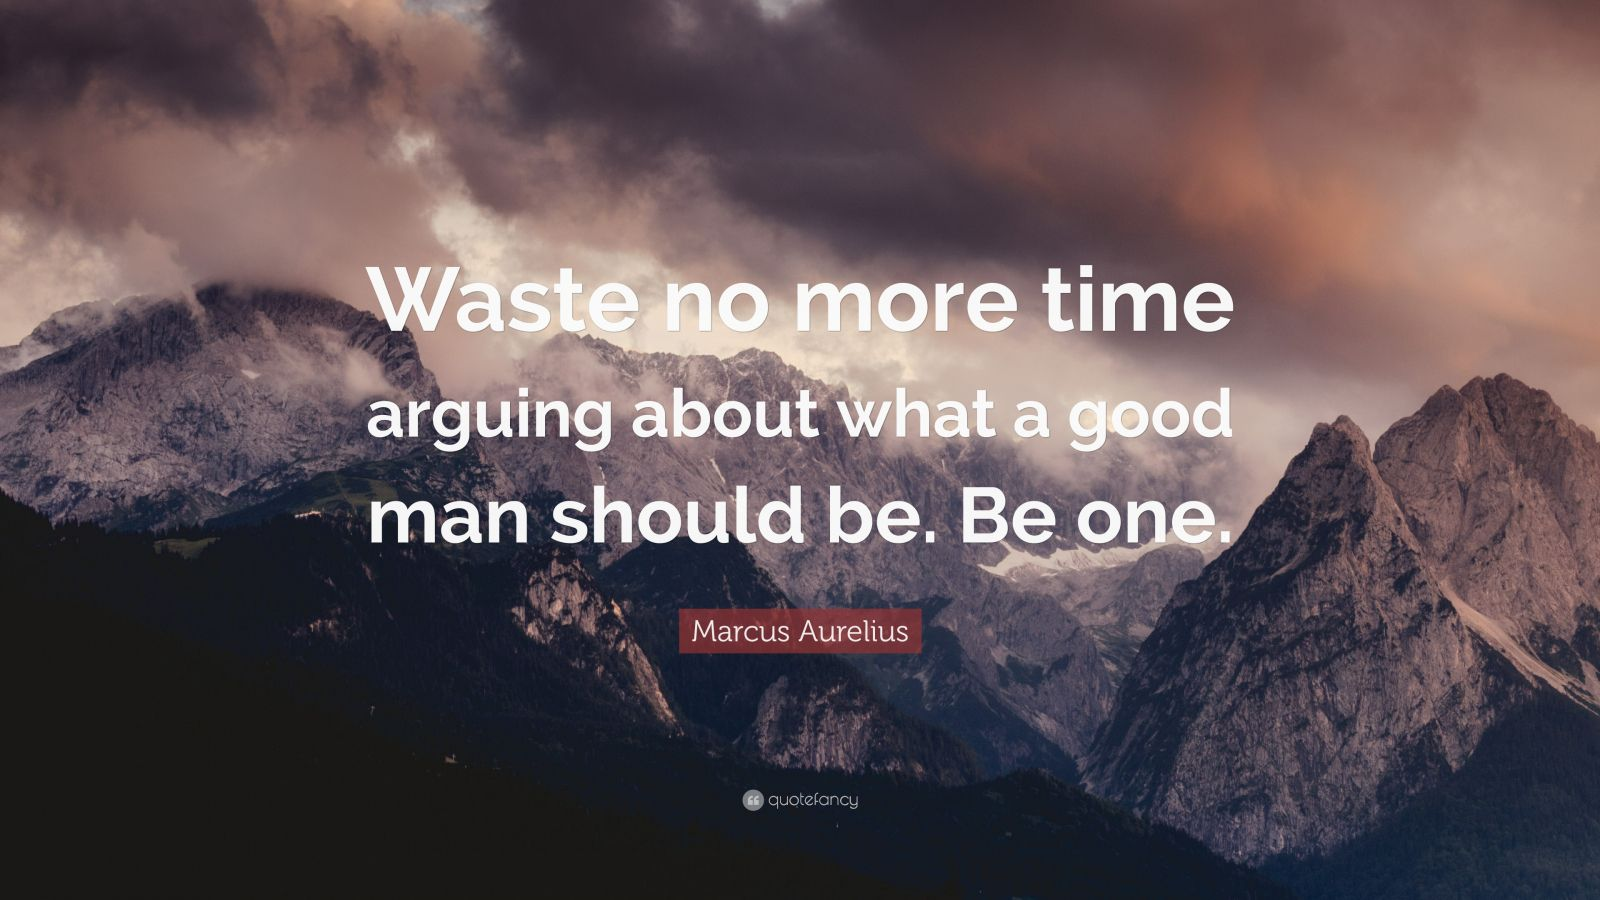 Good Should Waste Be One Man Marcus About Aurelius Arguing Be What No More Time